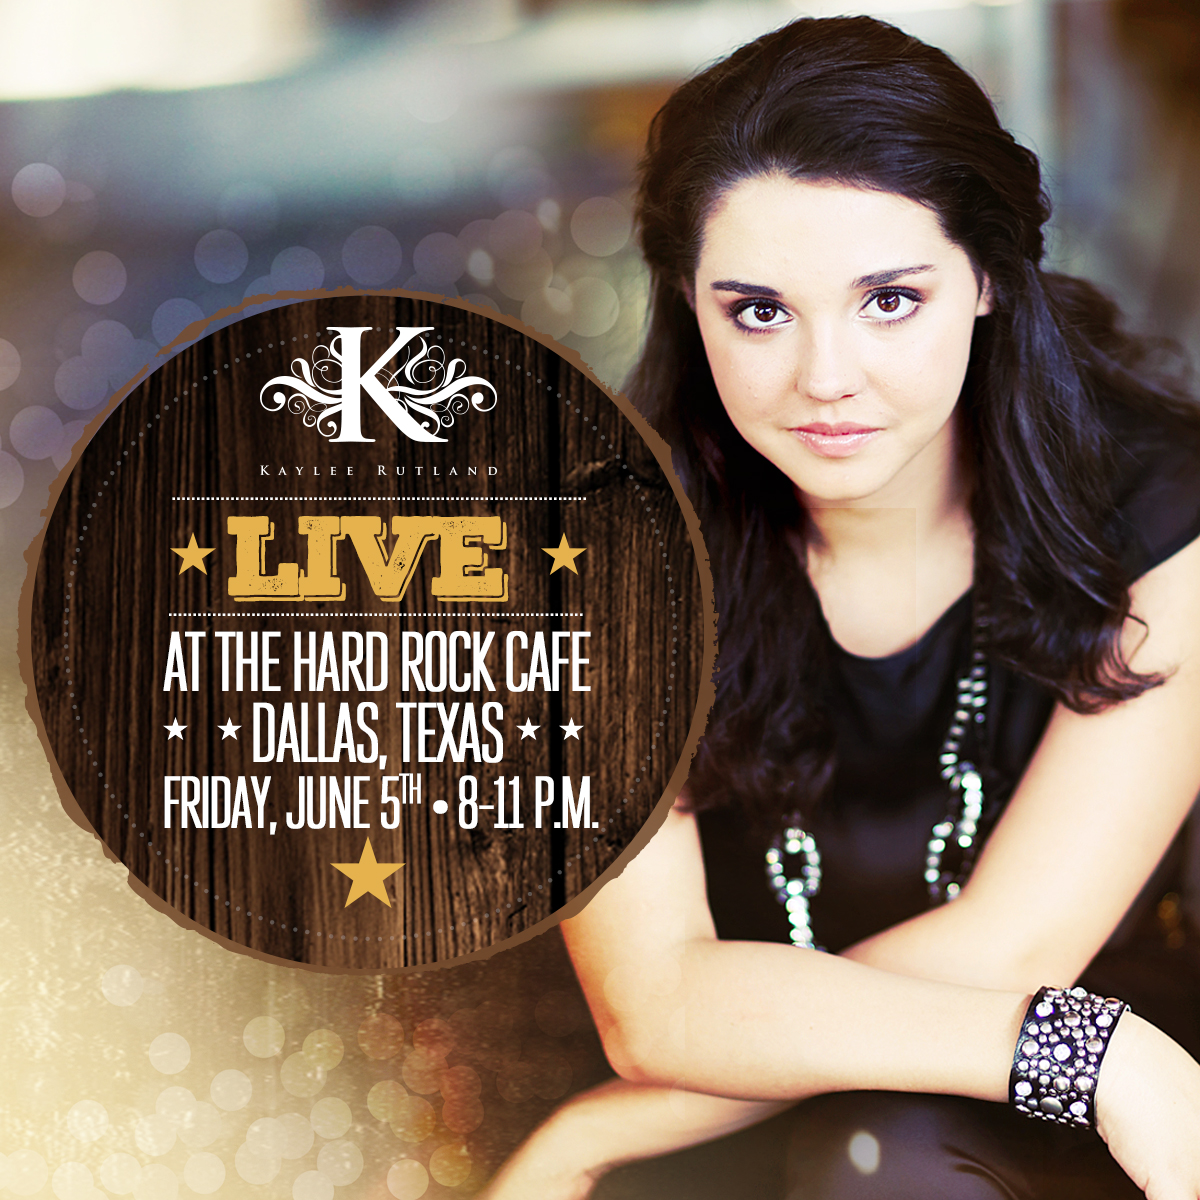 Kaylee Rutland Live in Dallas at the Hard Rock Cafe Friday, June 5, 2015